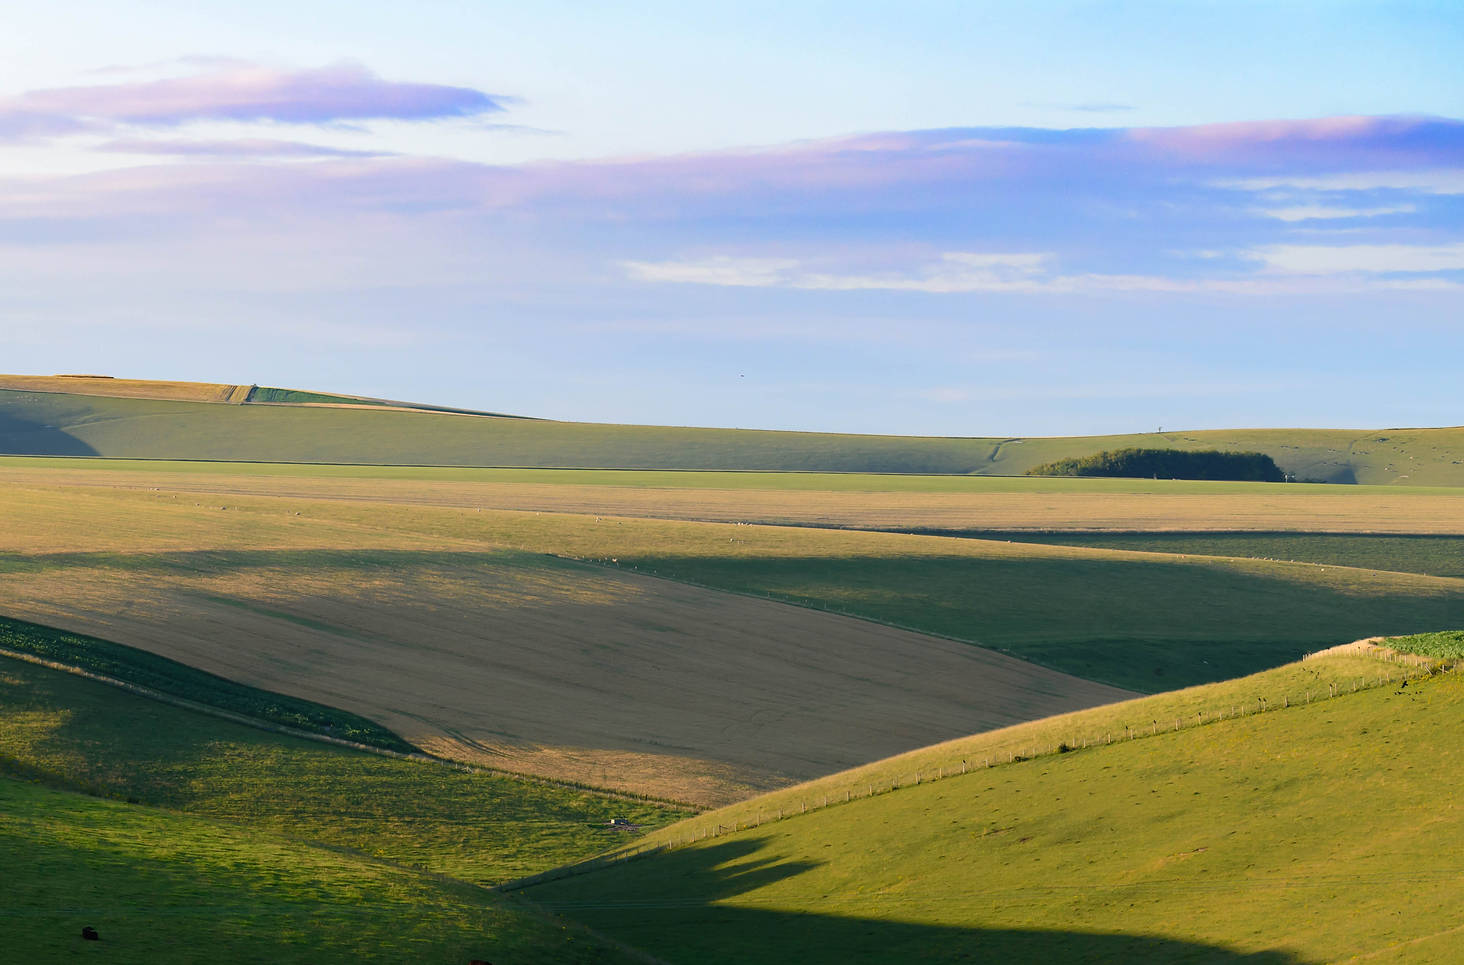 Landscape over Wiltshire